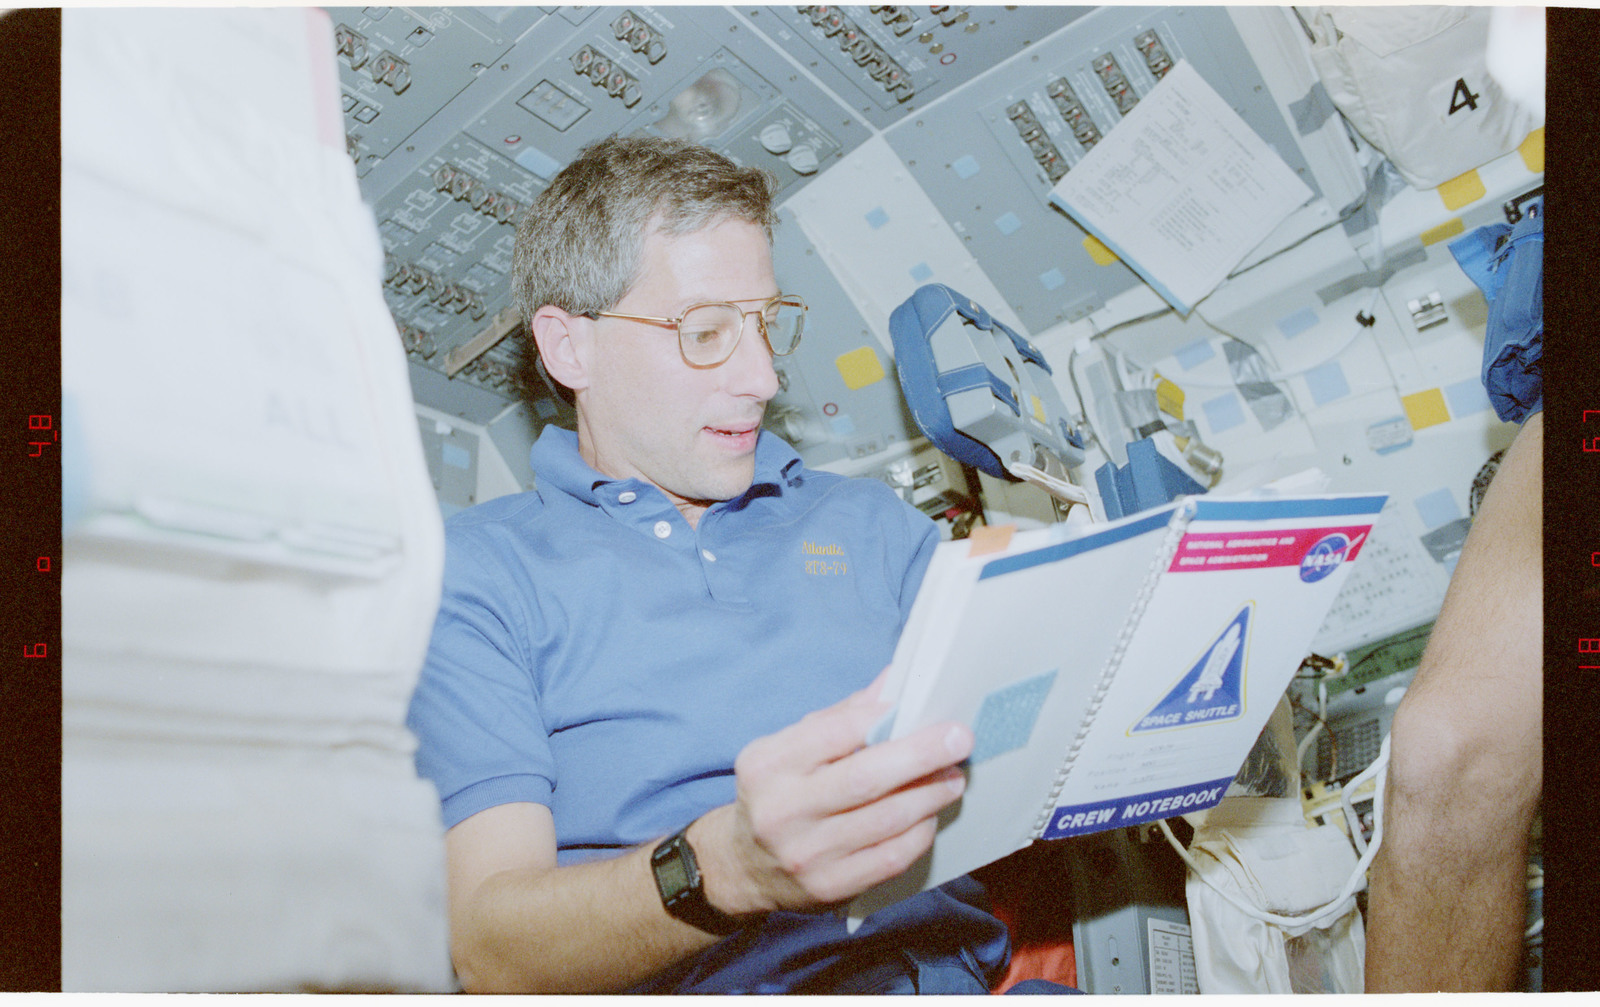 STS079-348-024 - STS-079 - STS-79 crew activities on the flight deck